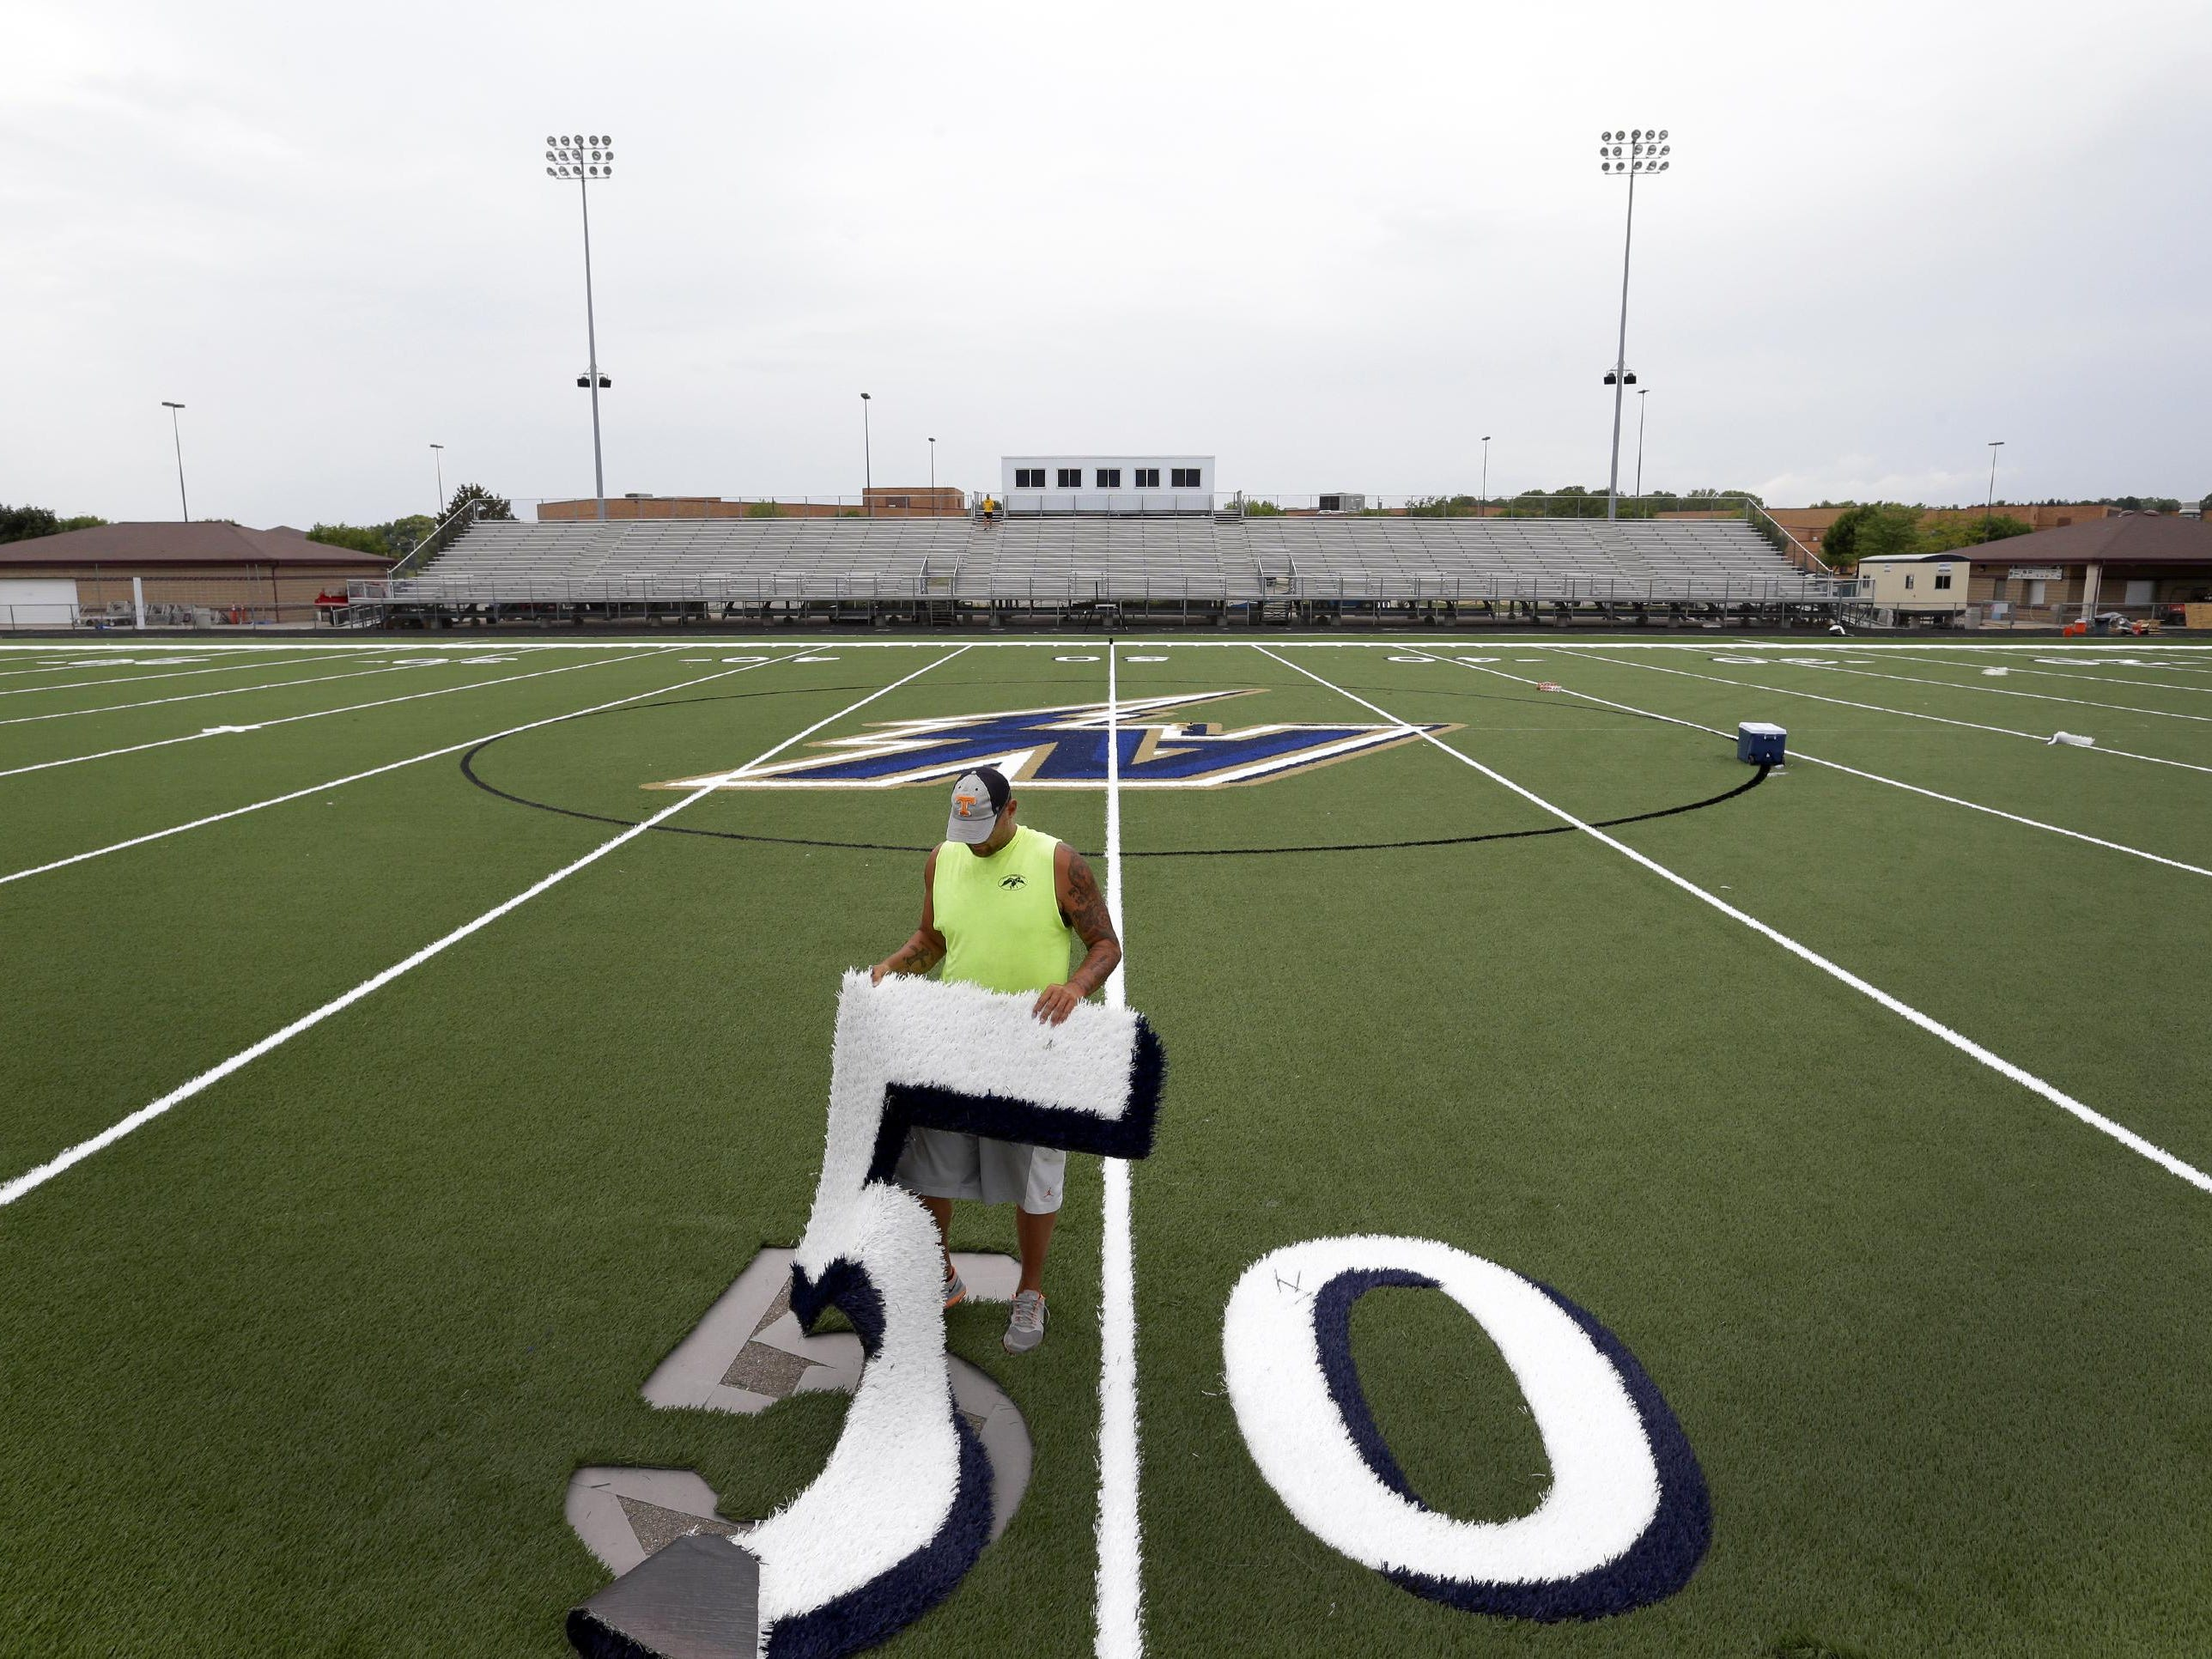 After setting seam tape in preparation for a glue application, Sports Contracting Group employee Sean Young puts a 50-yard mark in place on the new artificial turf Monday at Appleton North High School.